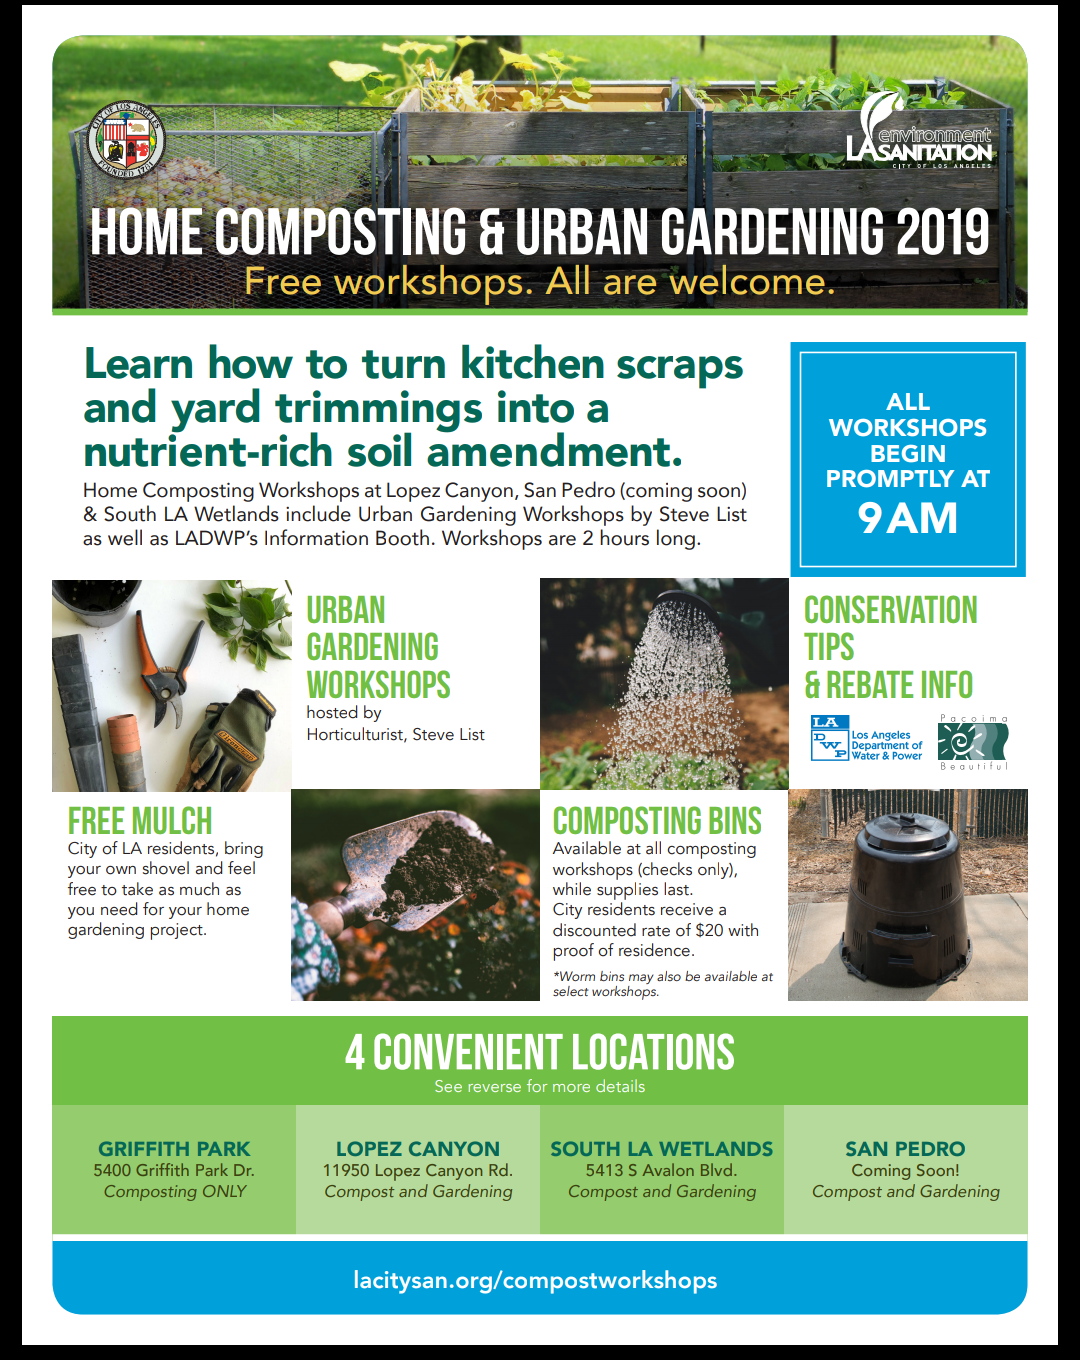 Home Composting and Urban Gardening 2019 - Los Angeles